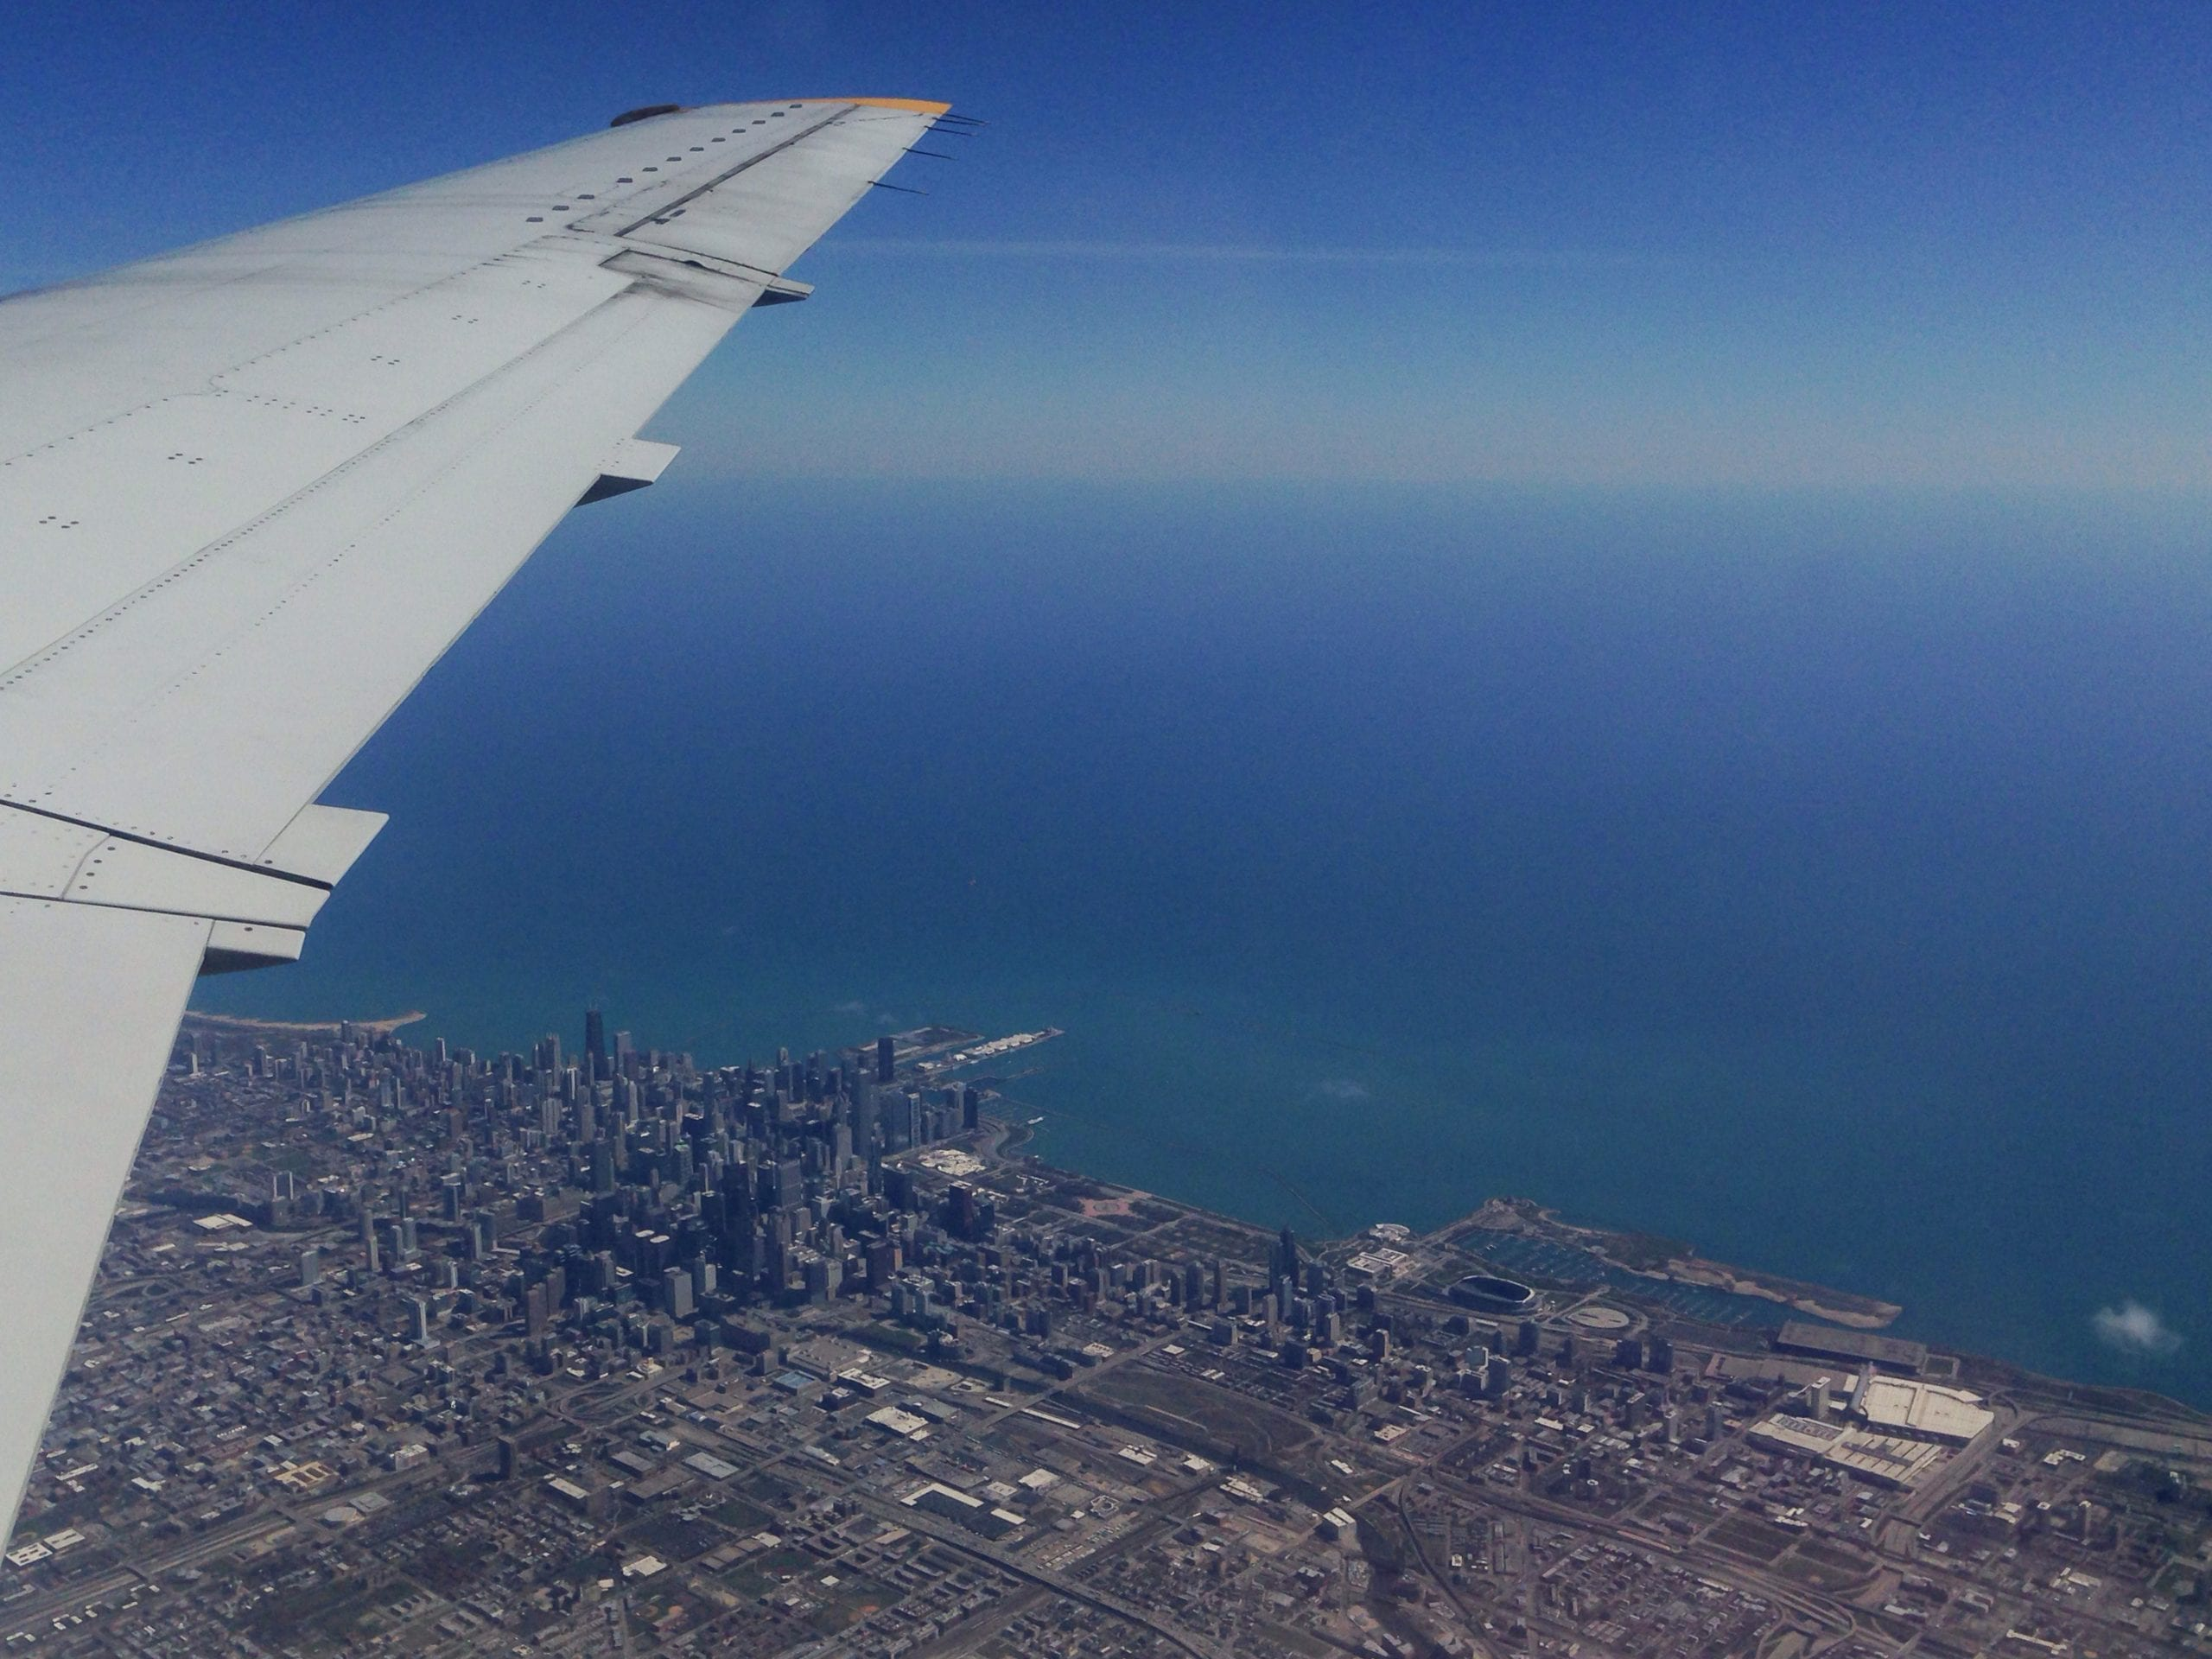 Art of Transit: Downtown Chicago, freeways and transit lines as seen from United Airline's Yoda-sized seats on Saturday morning as I made my way back to L.A. Photo by Steve Hymon.